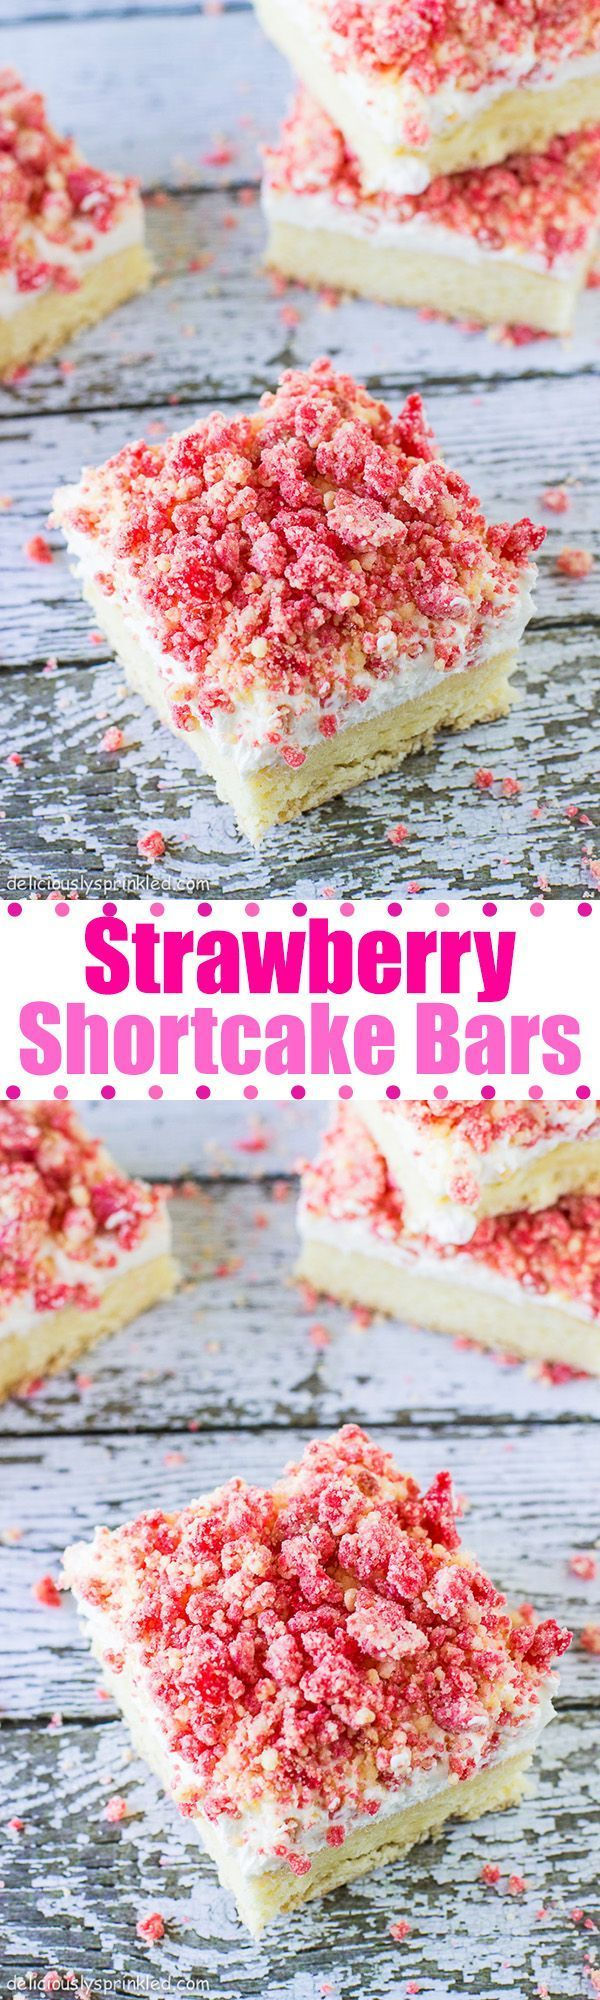 Strawberry Shortcake Bars-easy summer dessert.